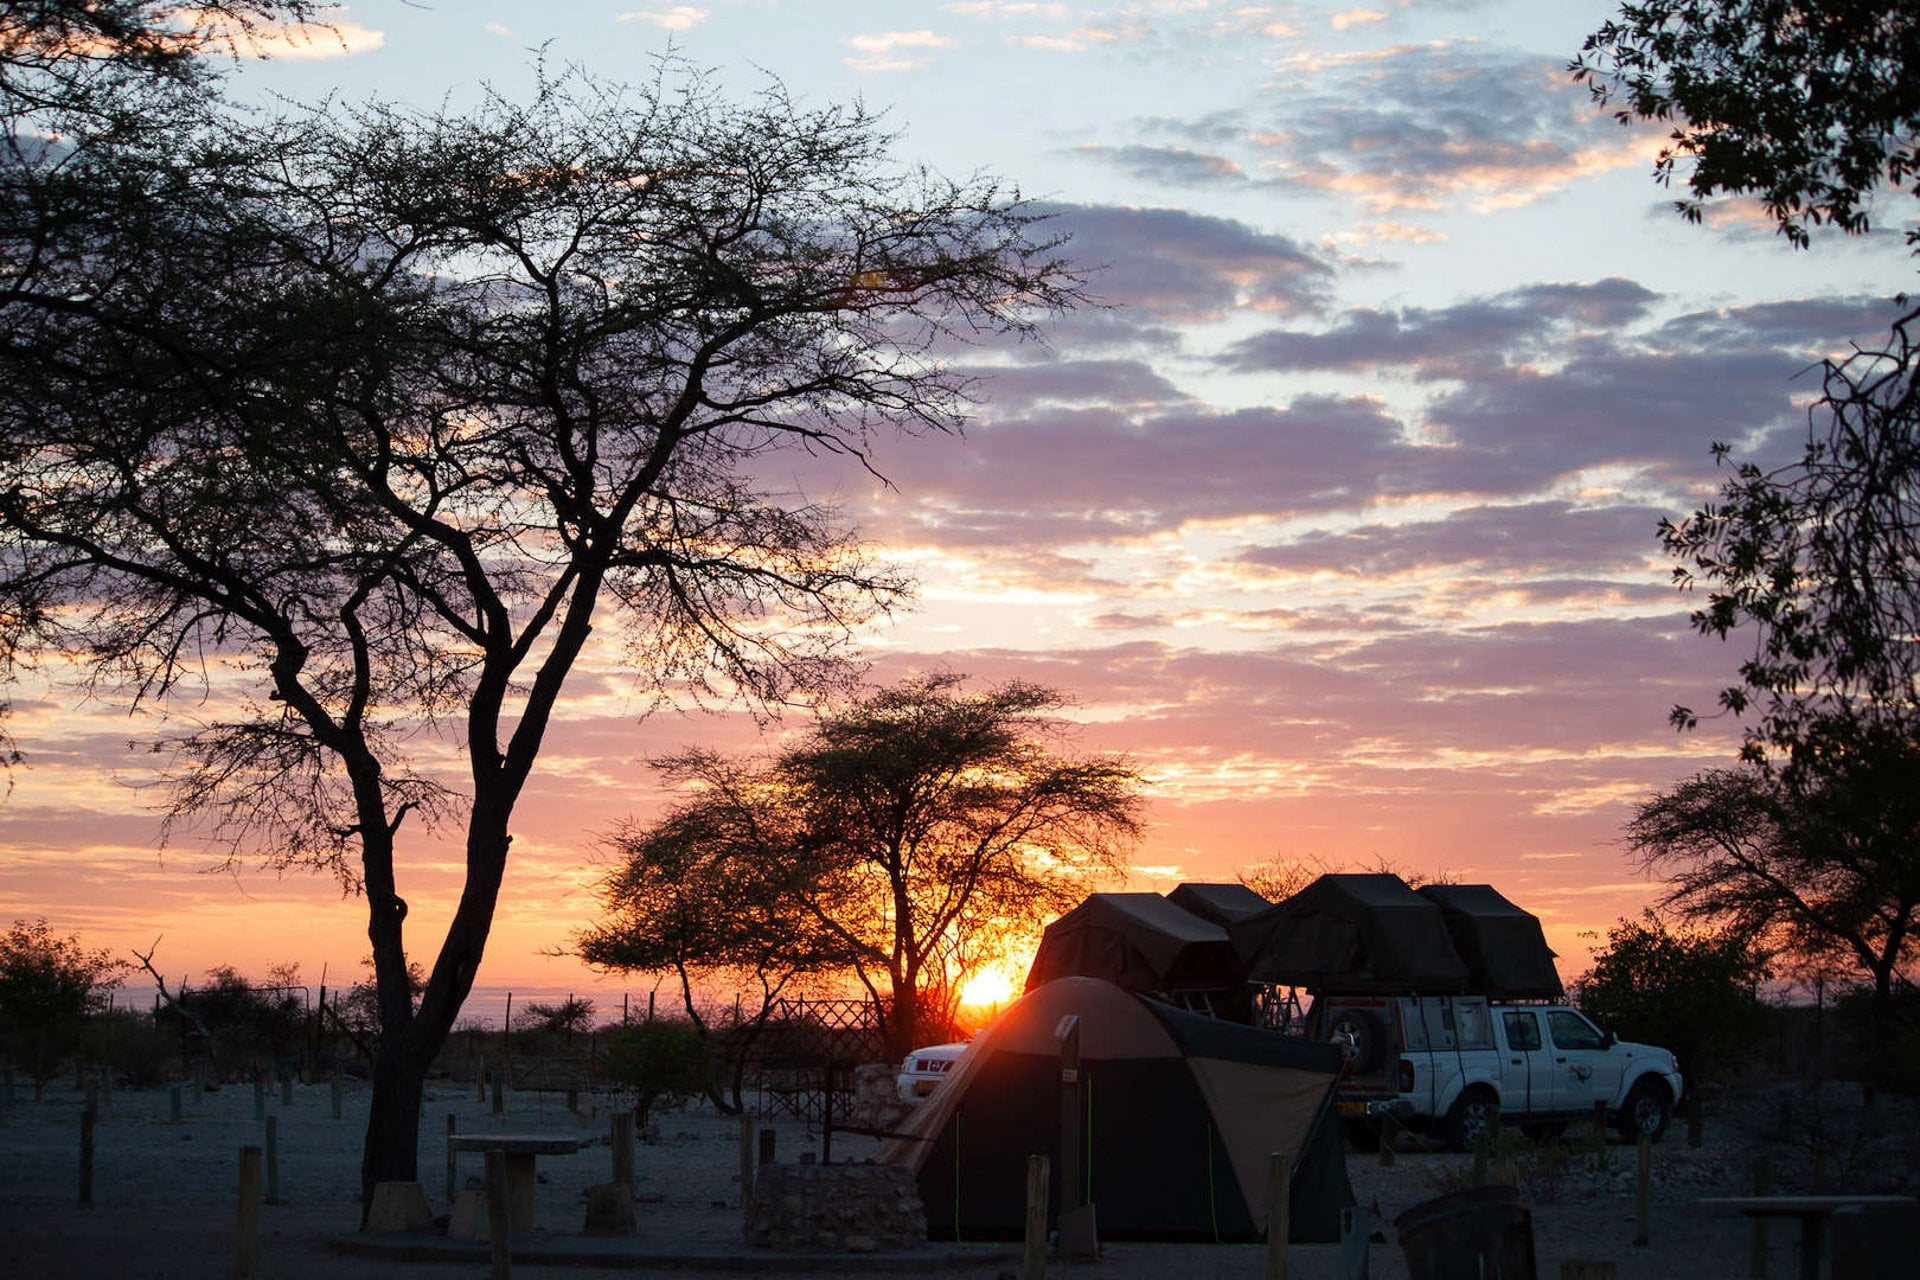 Cape Town to Namibia Road Trip cover photo - unrise at Okaukuejo Camp in Etosha with camper trucks in the foreground.